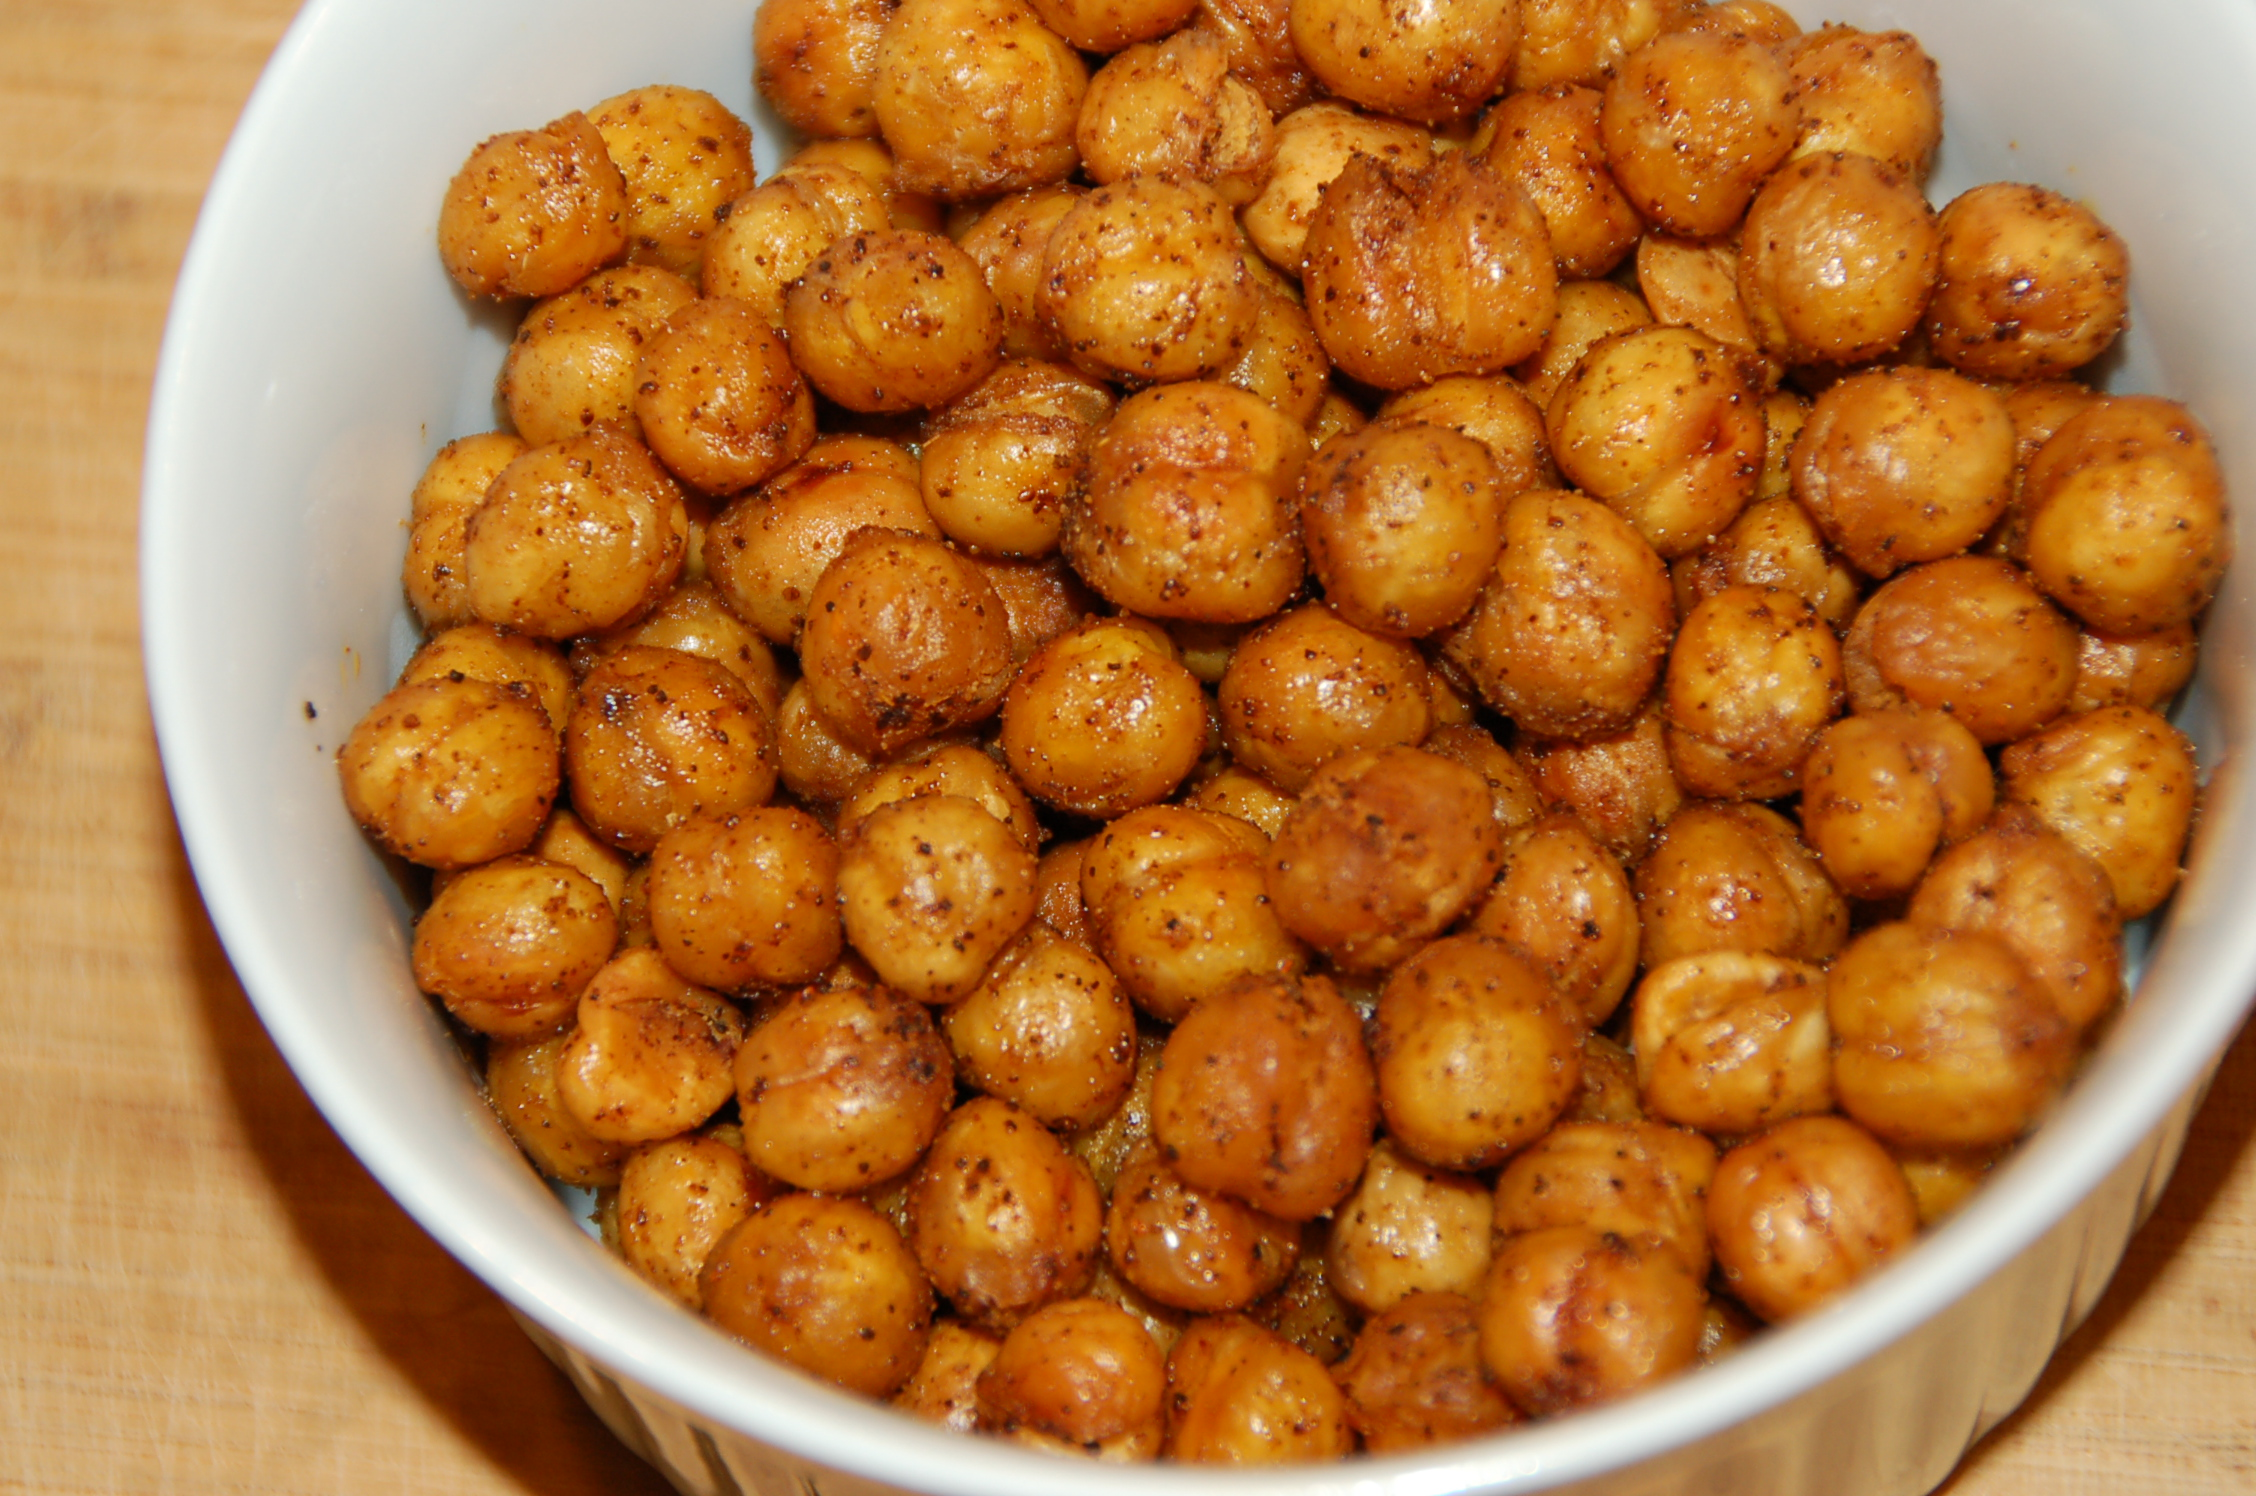 Spicy Oven Roasted Chickpeas